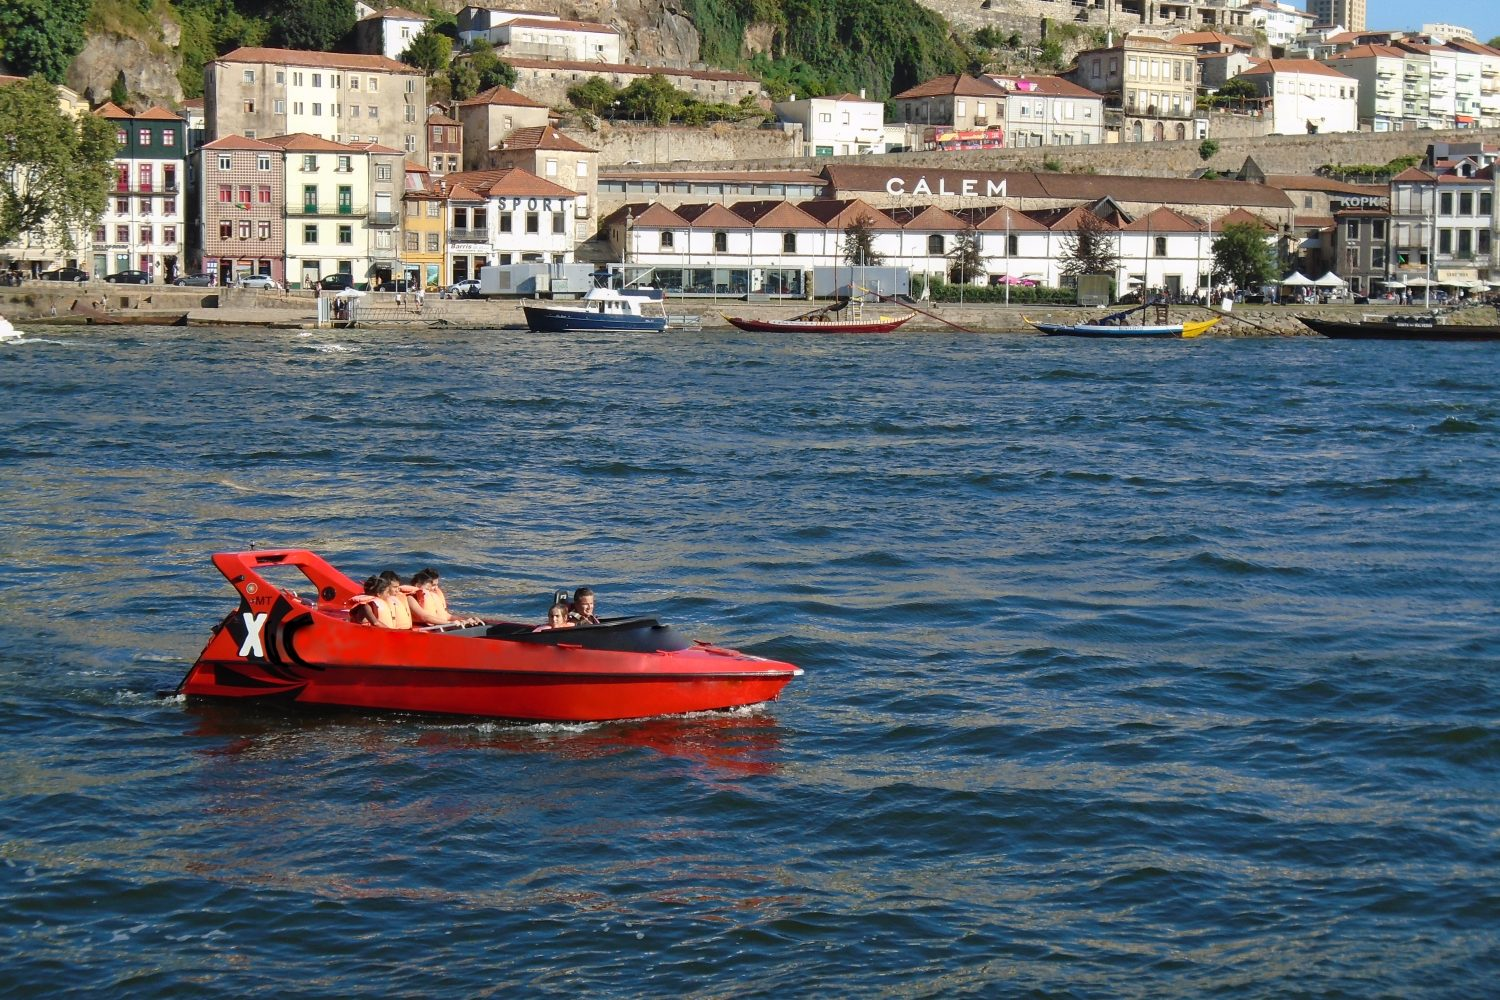 Jet boat another view at Douro River